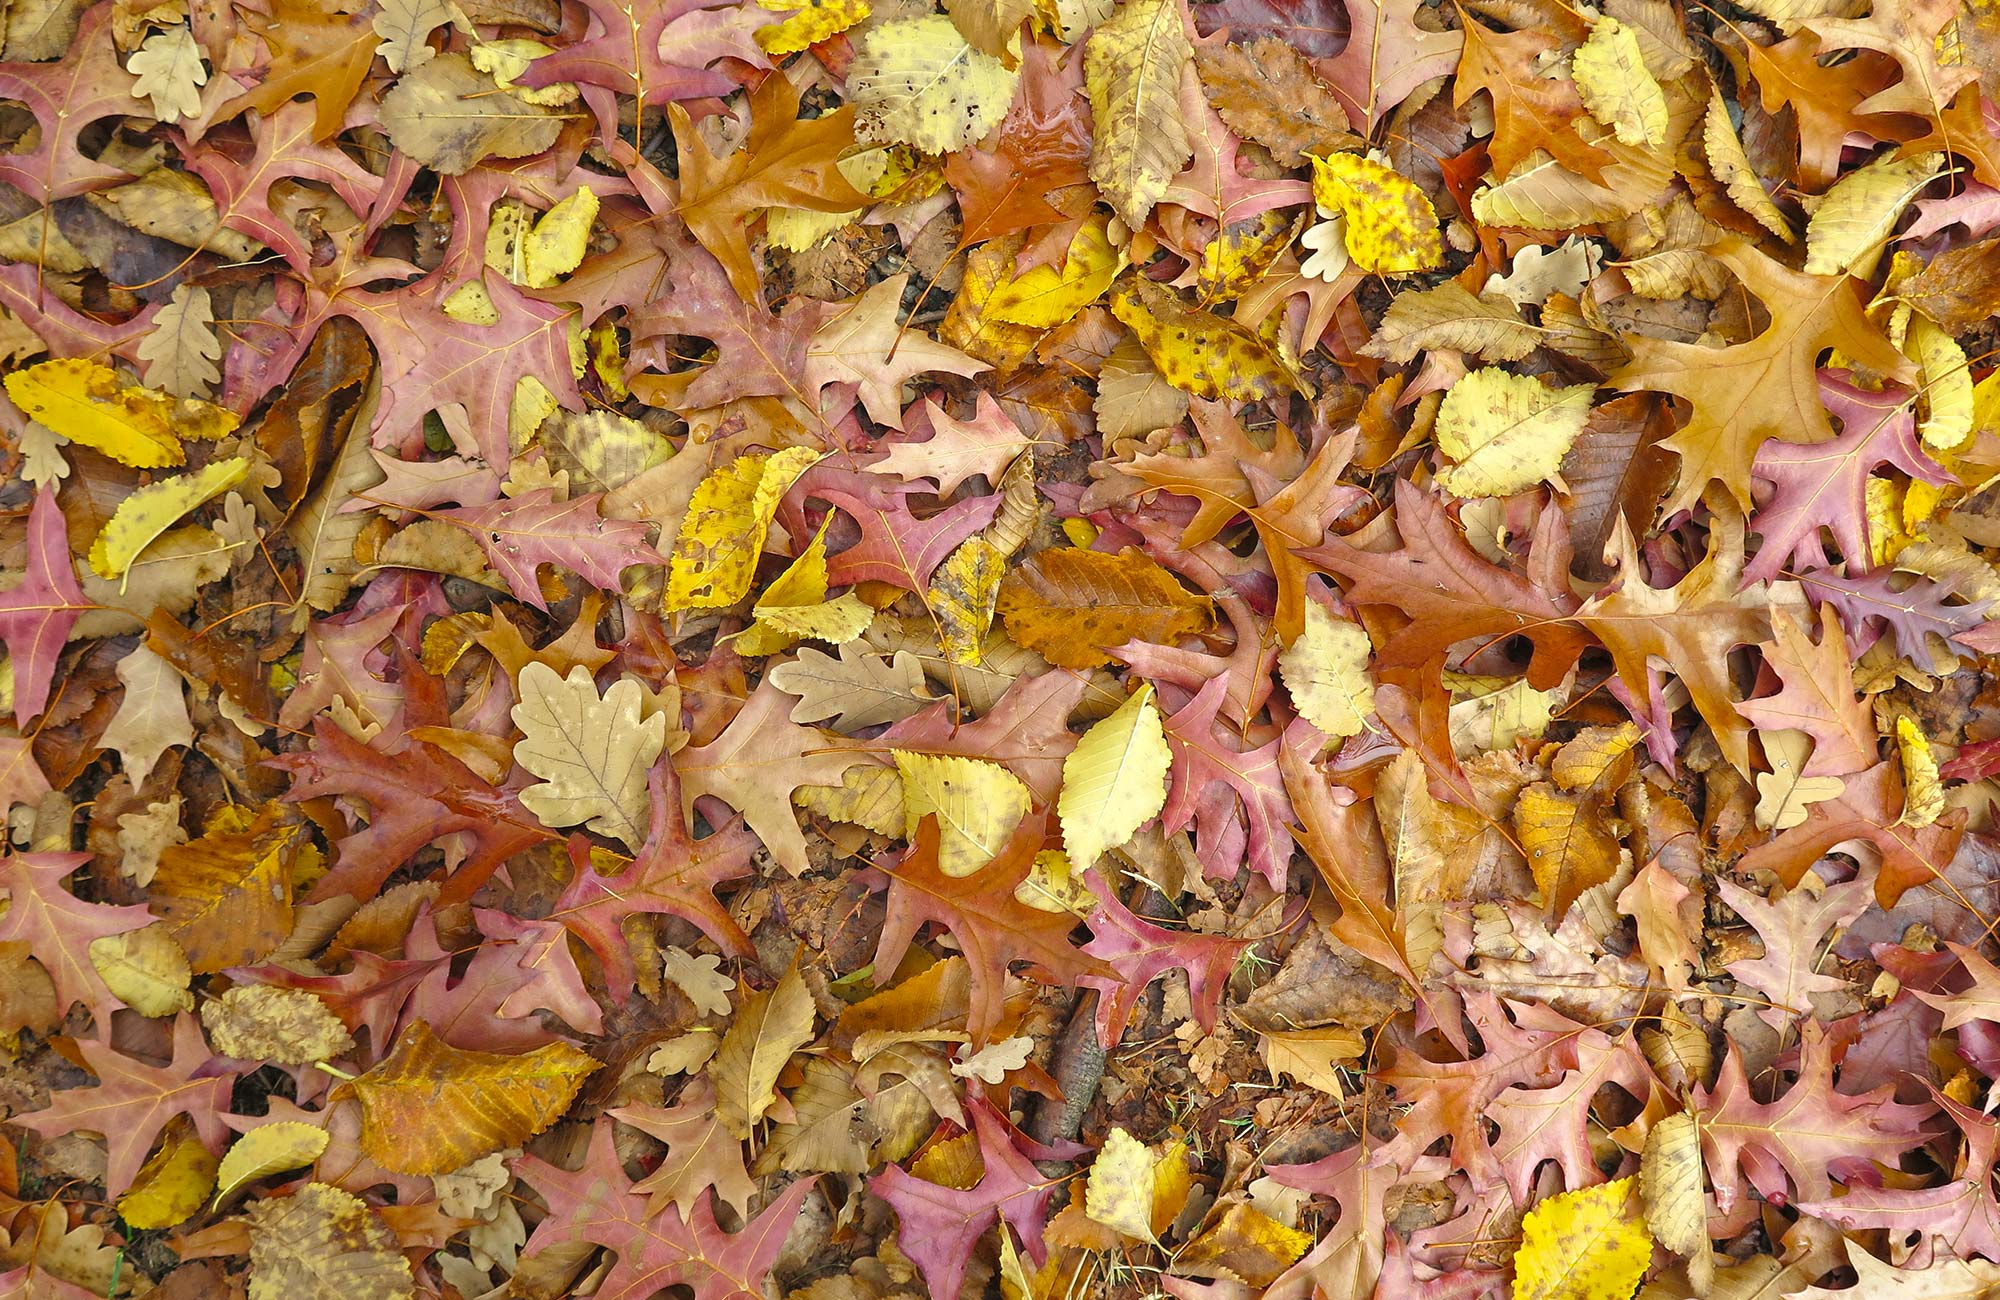 Fallen autumn leaves by the roadside in Hill End Historic Site. Photo: Elinor Sheargold/OEH